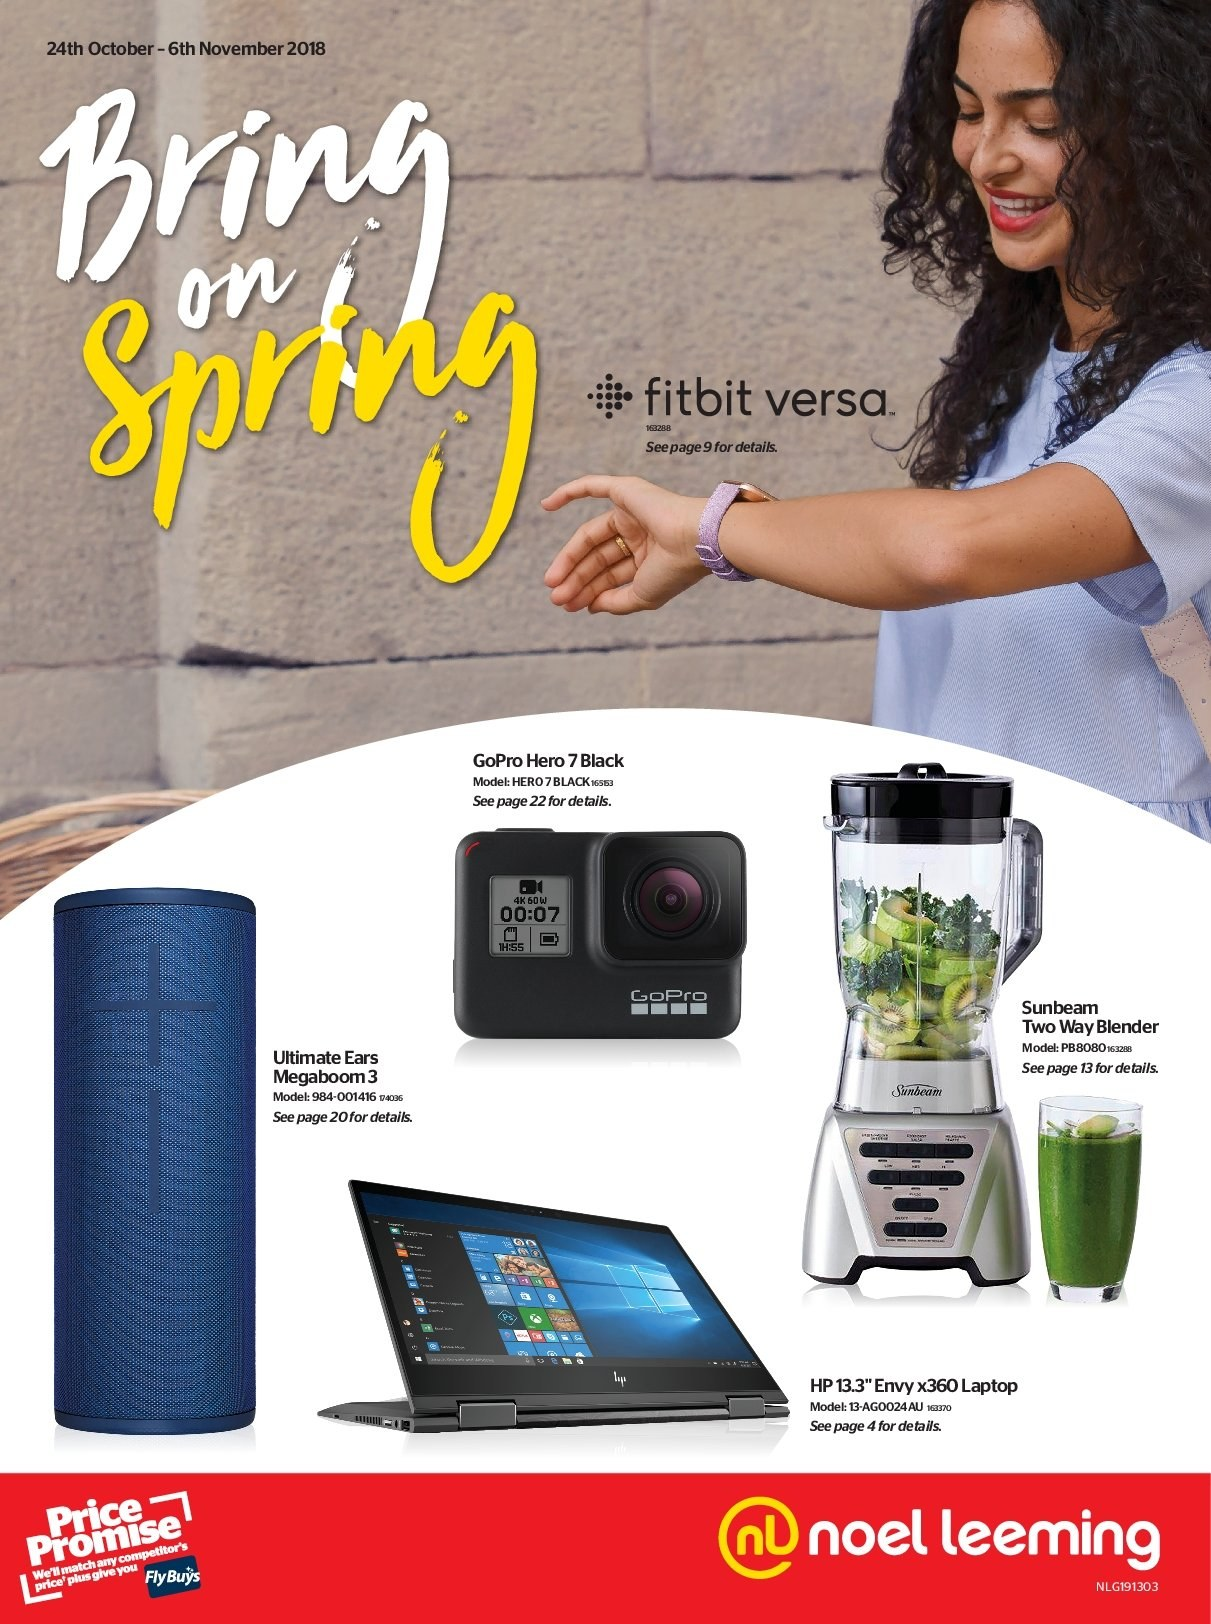 Noel Leeming mailer - 24.10.2018 - 06.11.2018 - Sales products - Fitbit, laptop, Ultimate Ears, GoPro, Sunbeam, blender. Page 1.